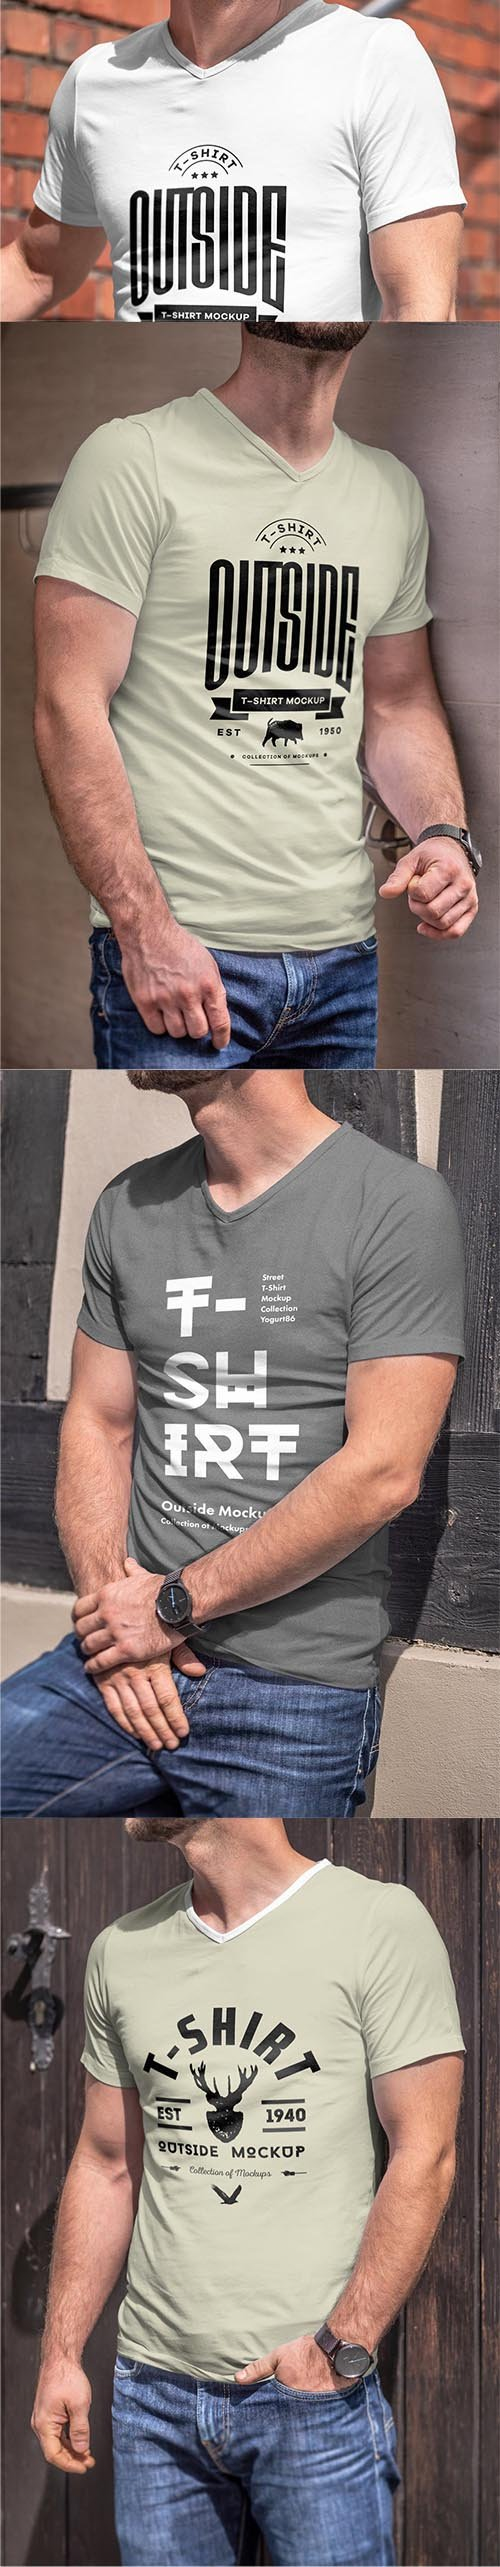 T-Shirt Mock-up 5 PSD